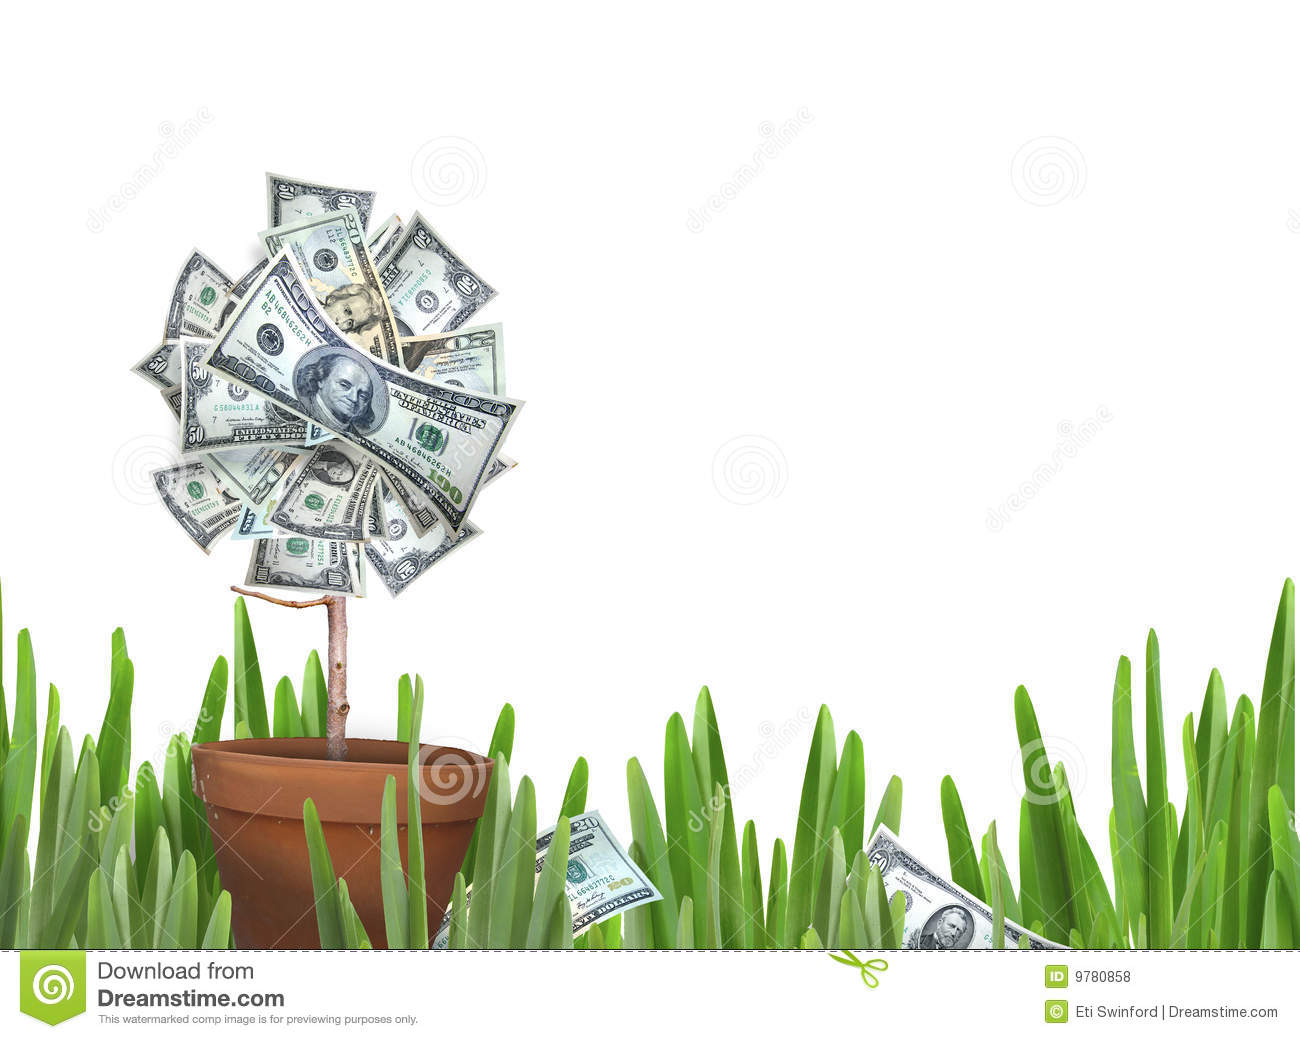 Money flower stock photo  Image of financial, growth, plant